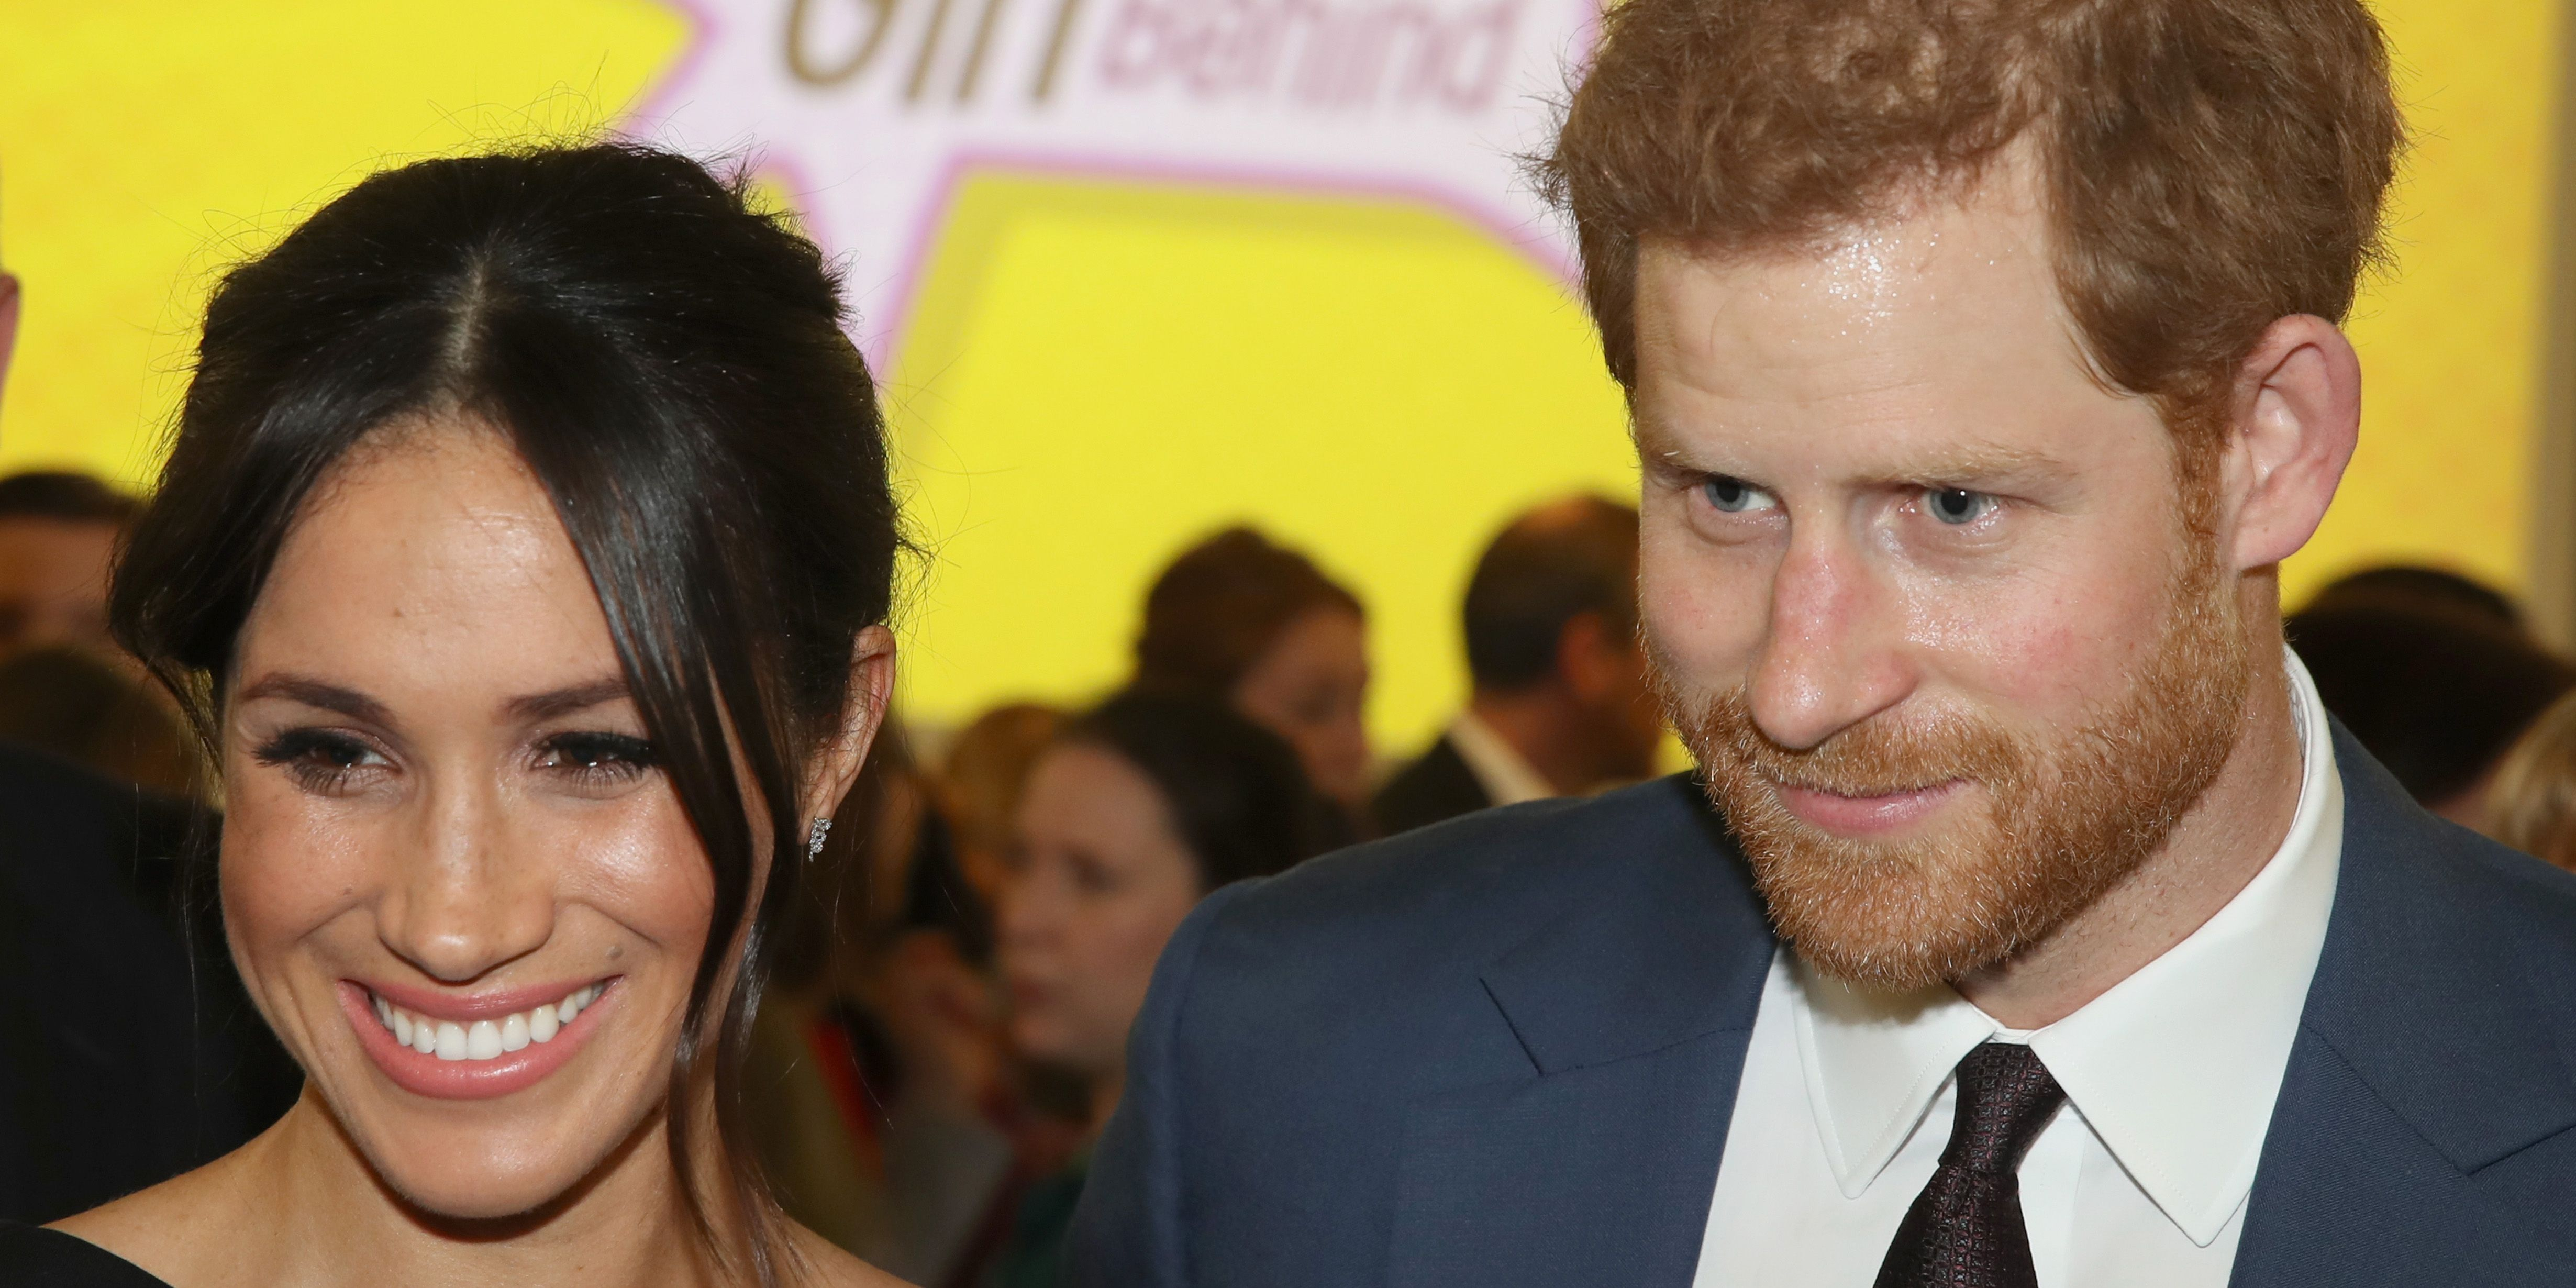 Is prince harry dating anyone now